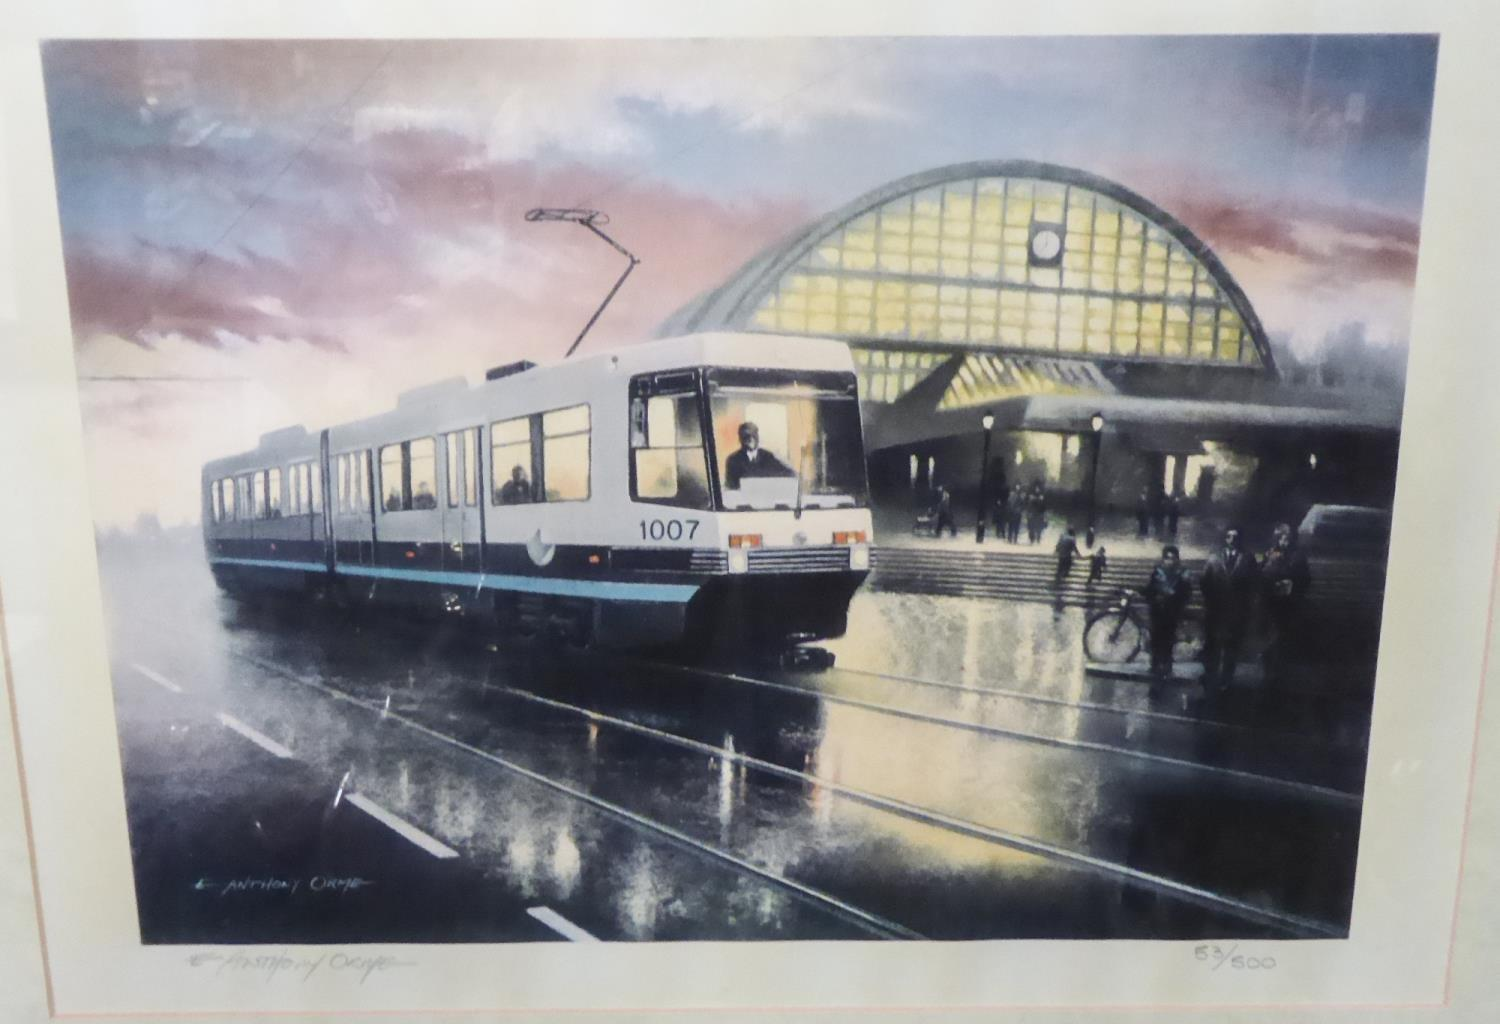 Lot 464 - ANTHONY ORME LIMITED EDITION COLOUR PRINT, MANCHESTER CITY CENTRE WITH METROLINK TRAM AND CENTRAL